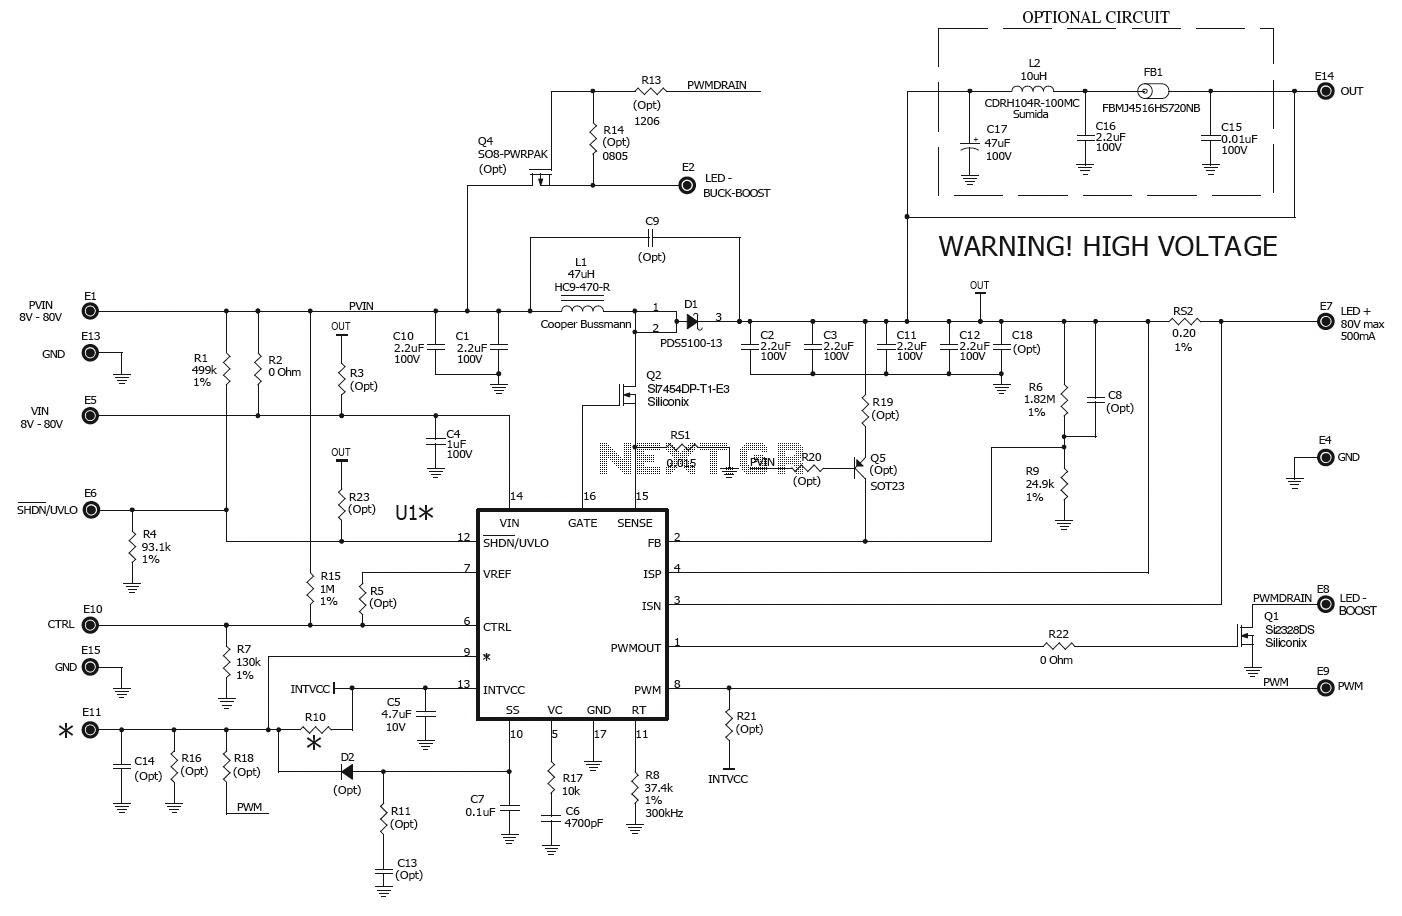 honeywell humidifier wiring diagram single phase motor capacitor start run 24 volt a 30 amp elsavadorla